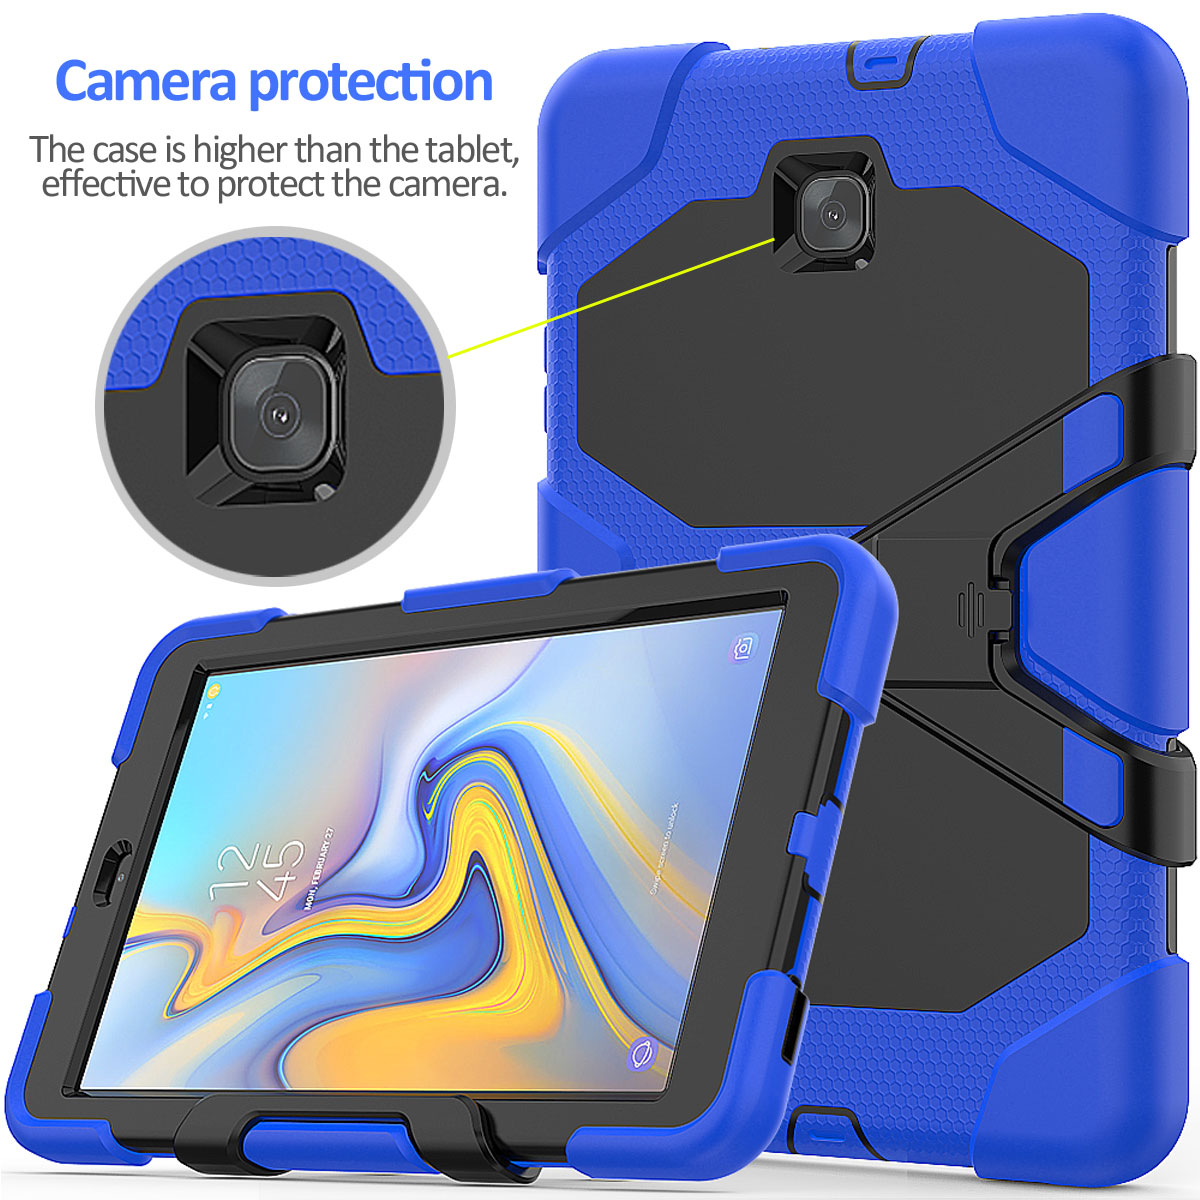 Rugged-Hard-Case-For-Samsung-Galaxy-Tab-A-8-0-2018-SM-T387-with-Screen-Protector thumbnail 79